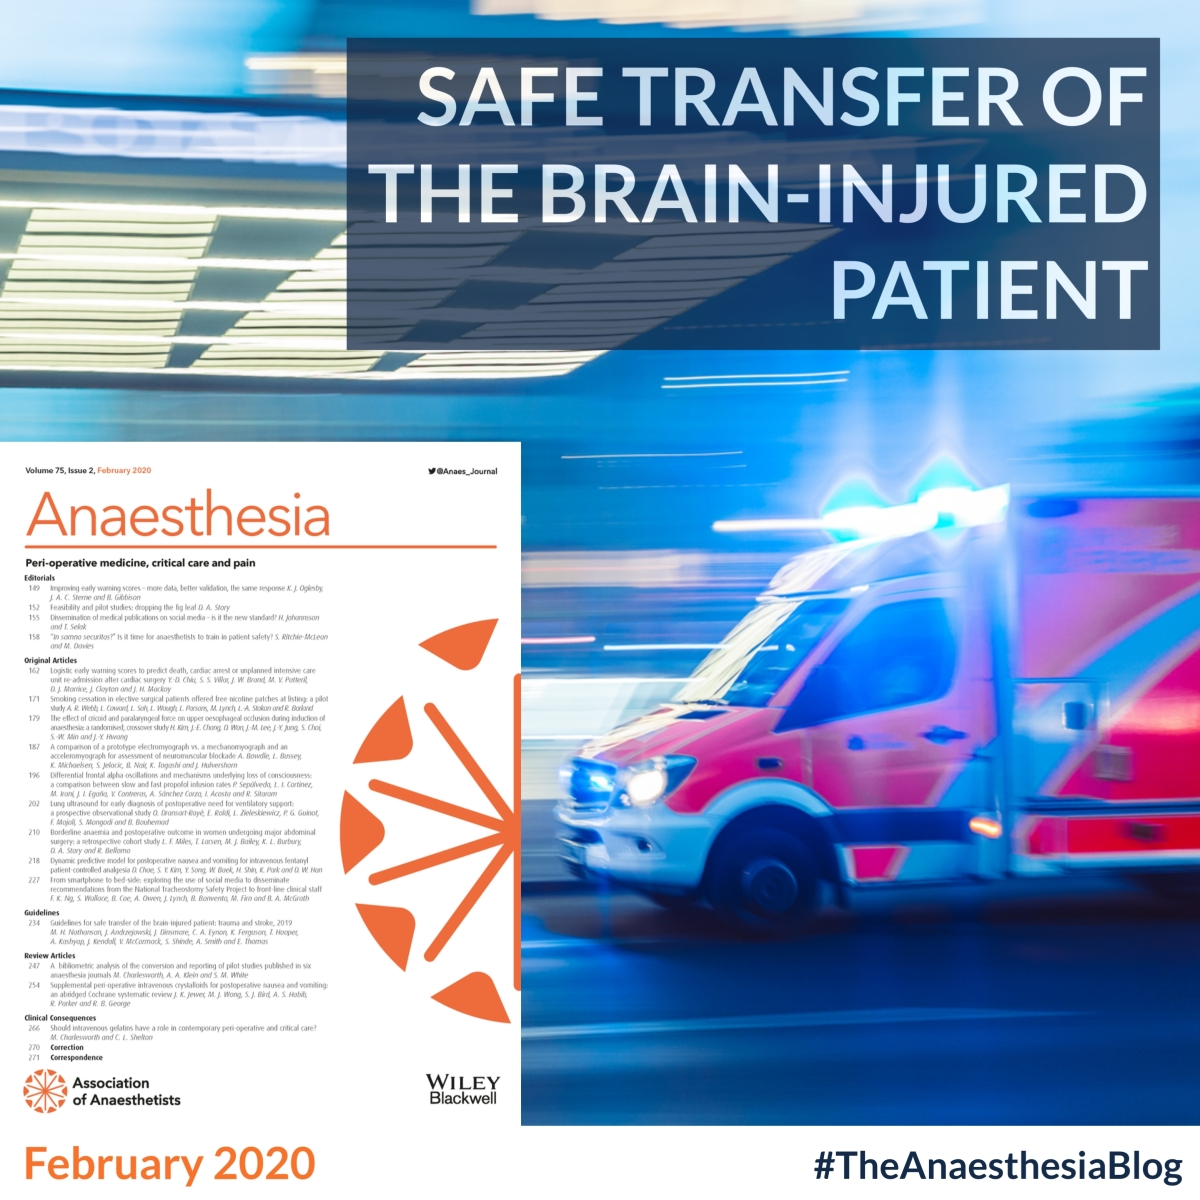 Safe transfer of the brain-injured patient